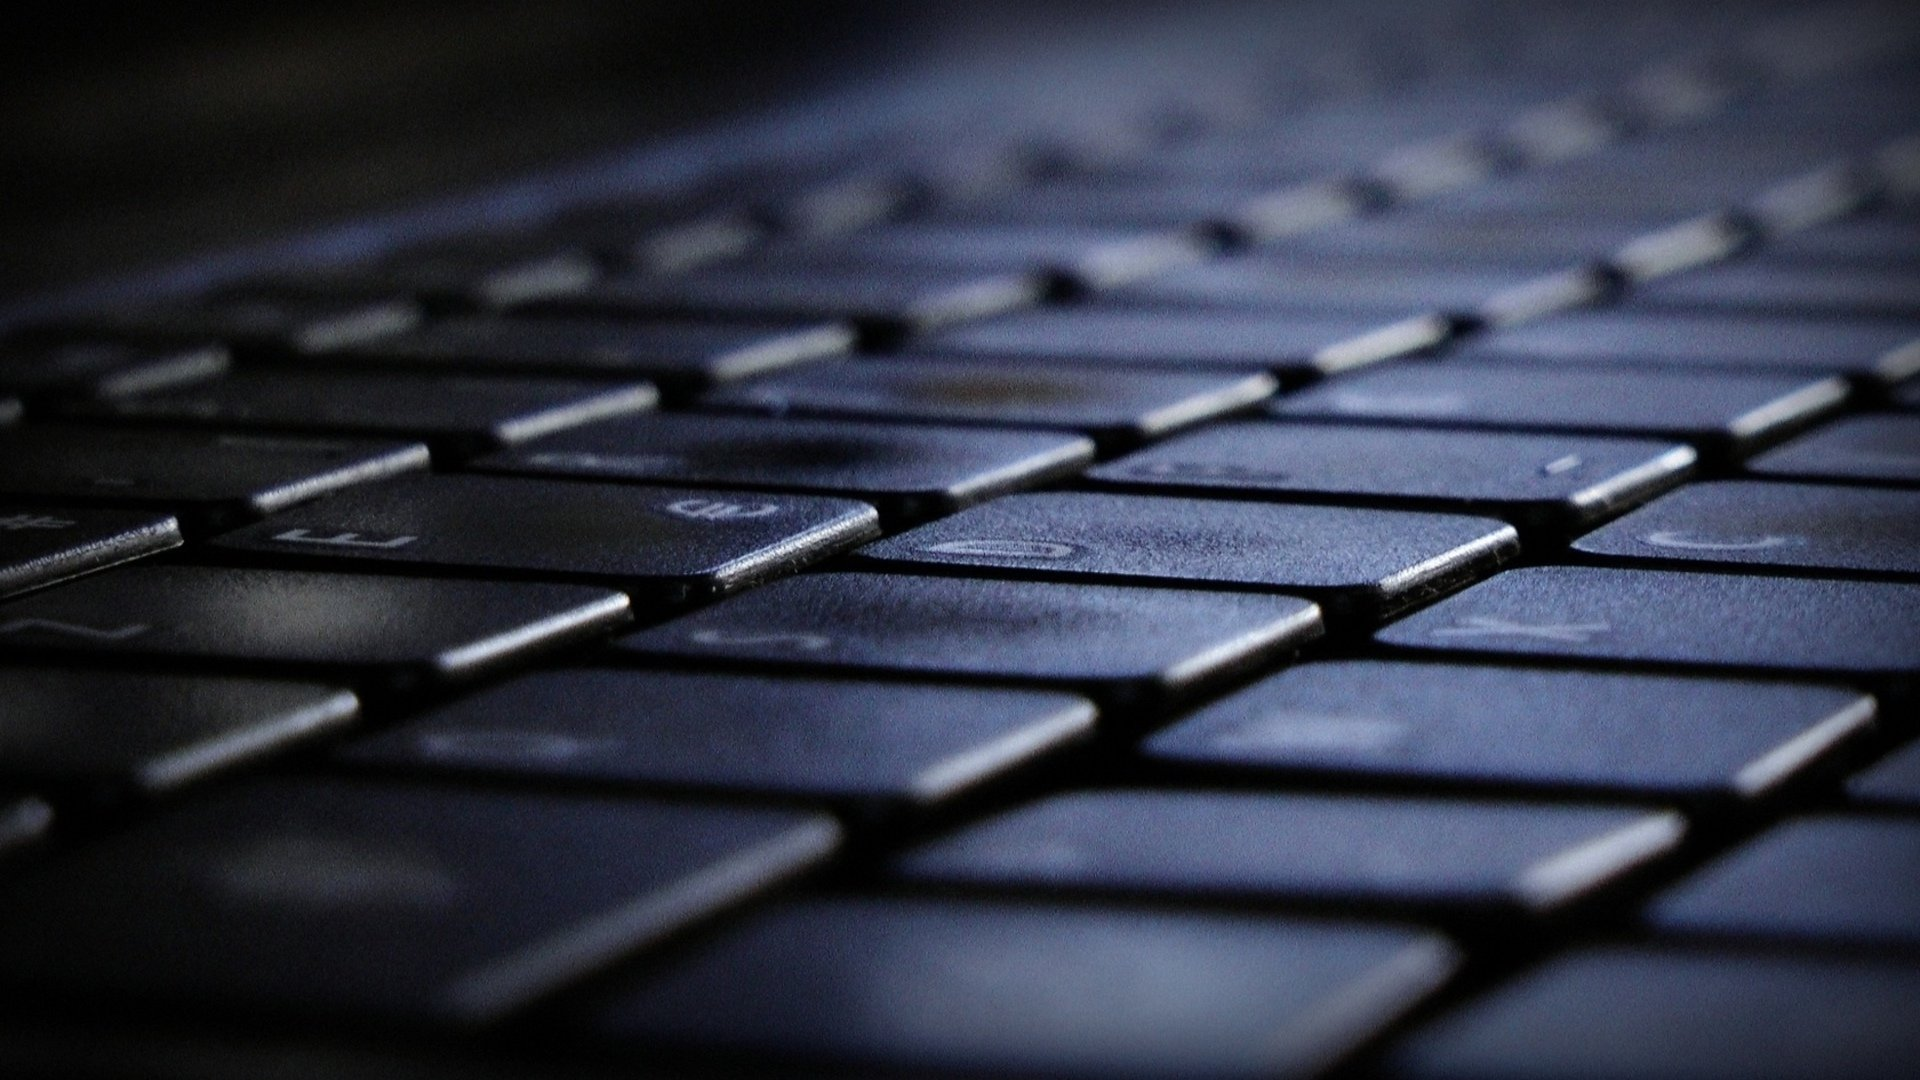 Download Full Hd 1080p Keyboard Computer Wallpaper Id 497915 For Free